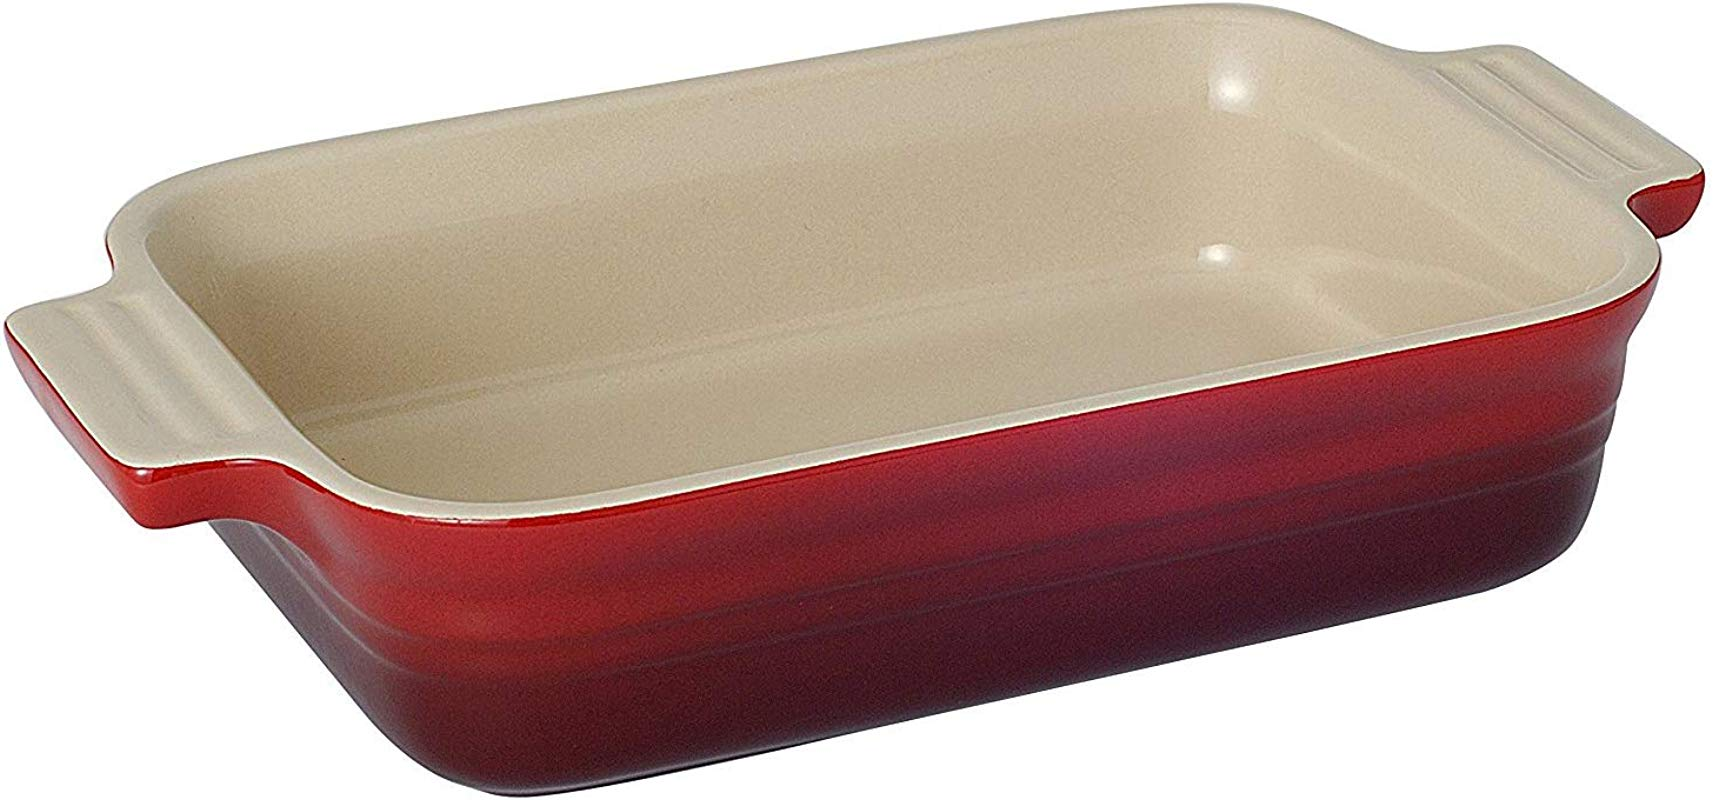 Le Creuset Stoneware 7 By 5 Inch Rectangular Dish Cherry